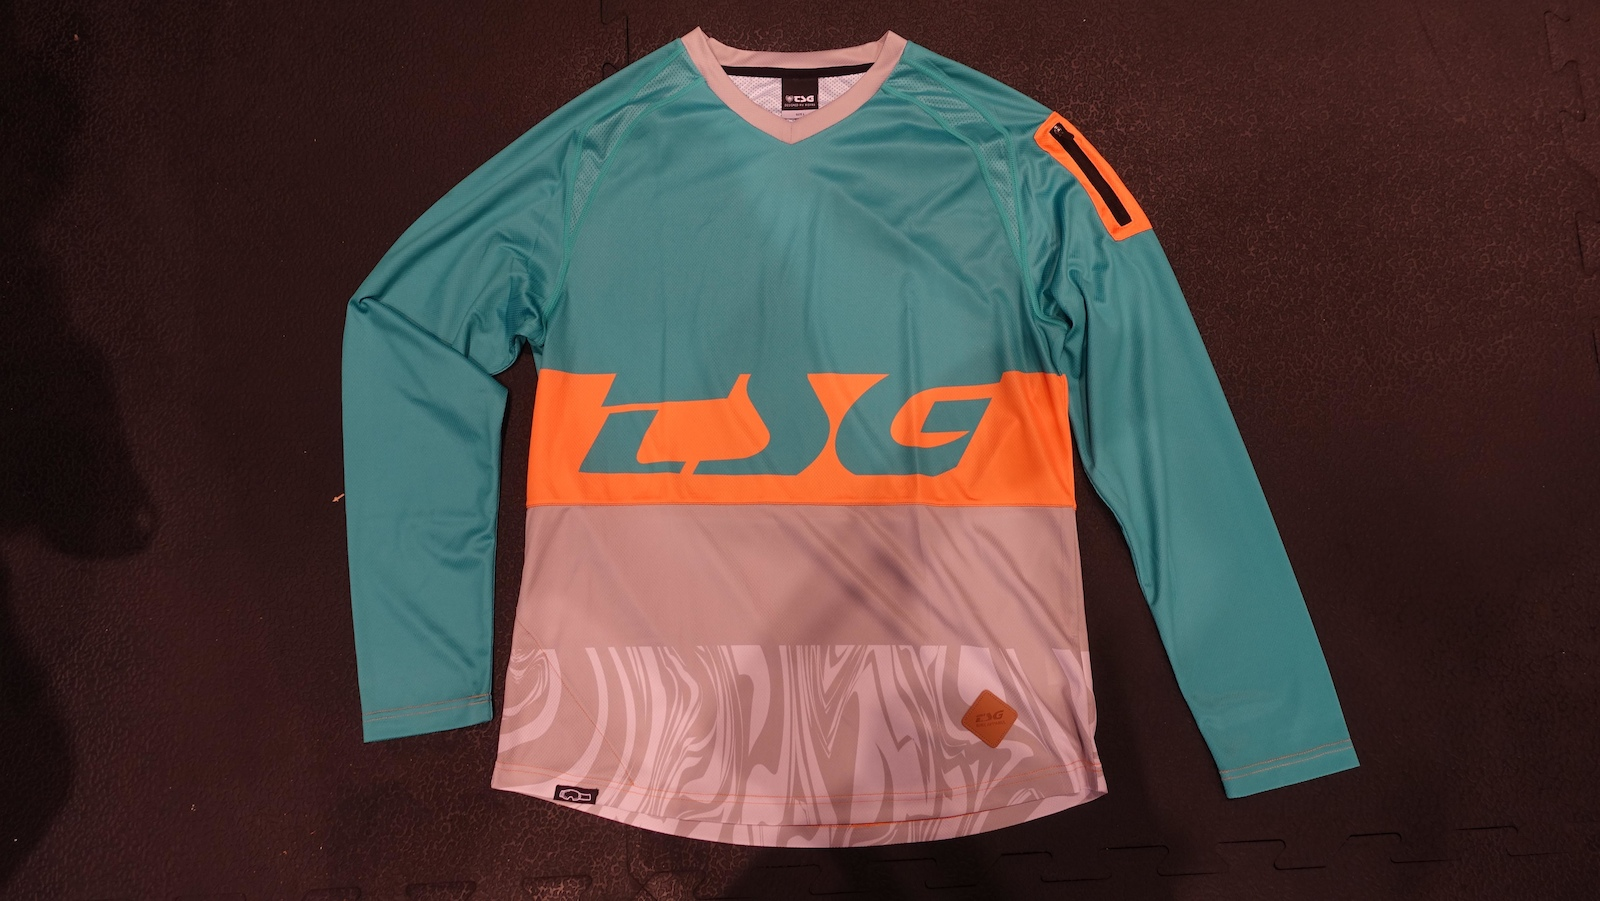 The Breeze Jersey is a little more traditional but no less colourful.